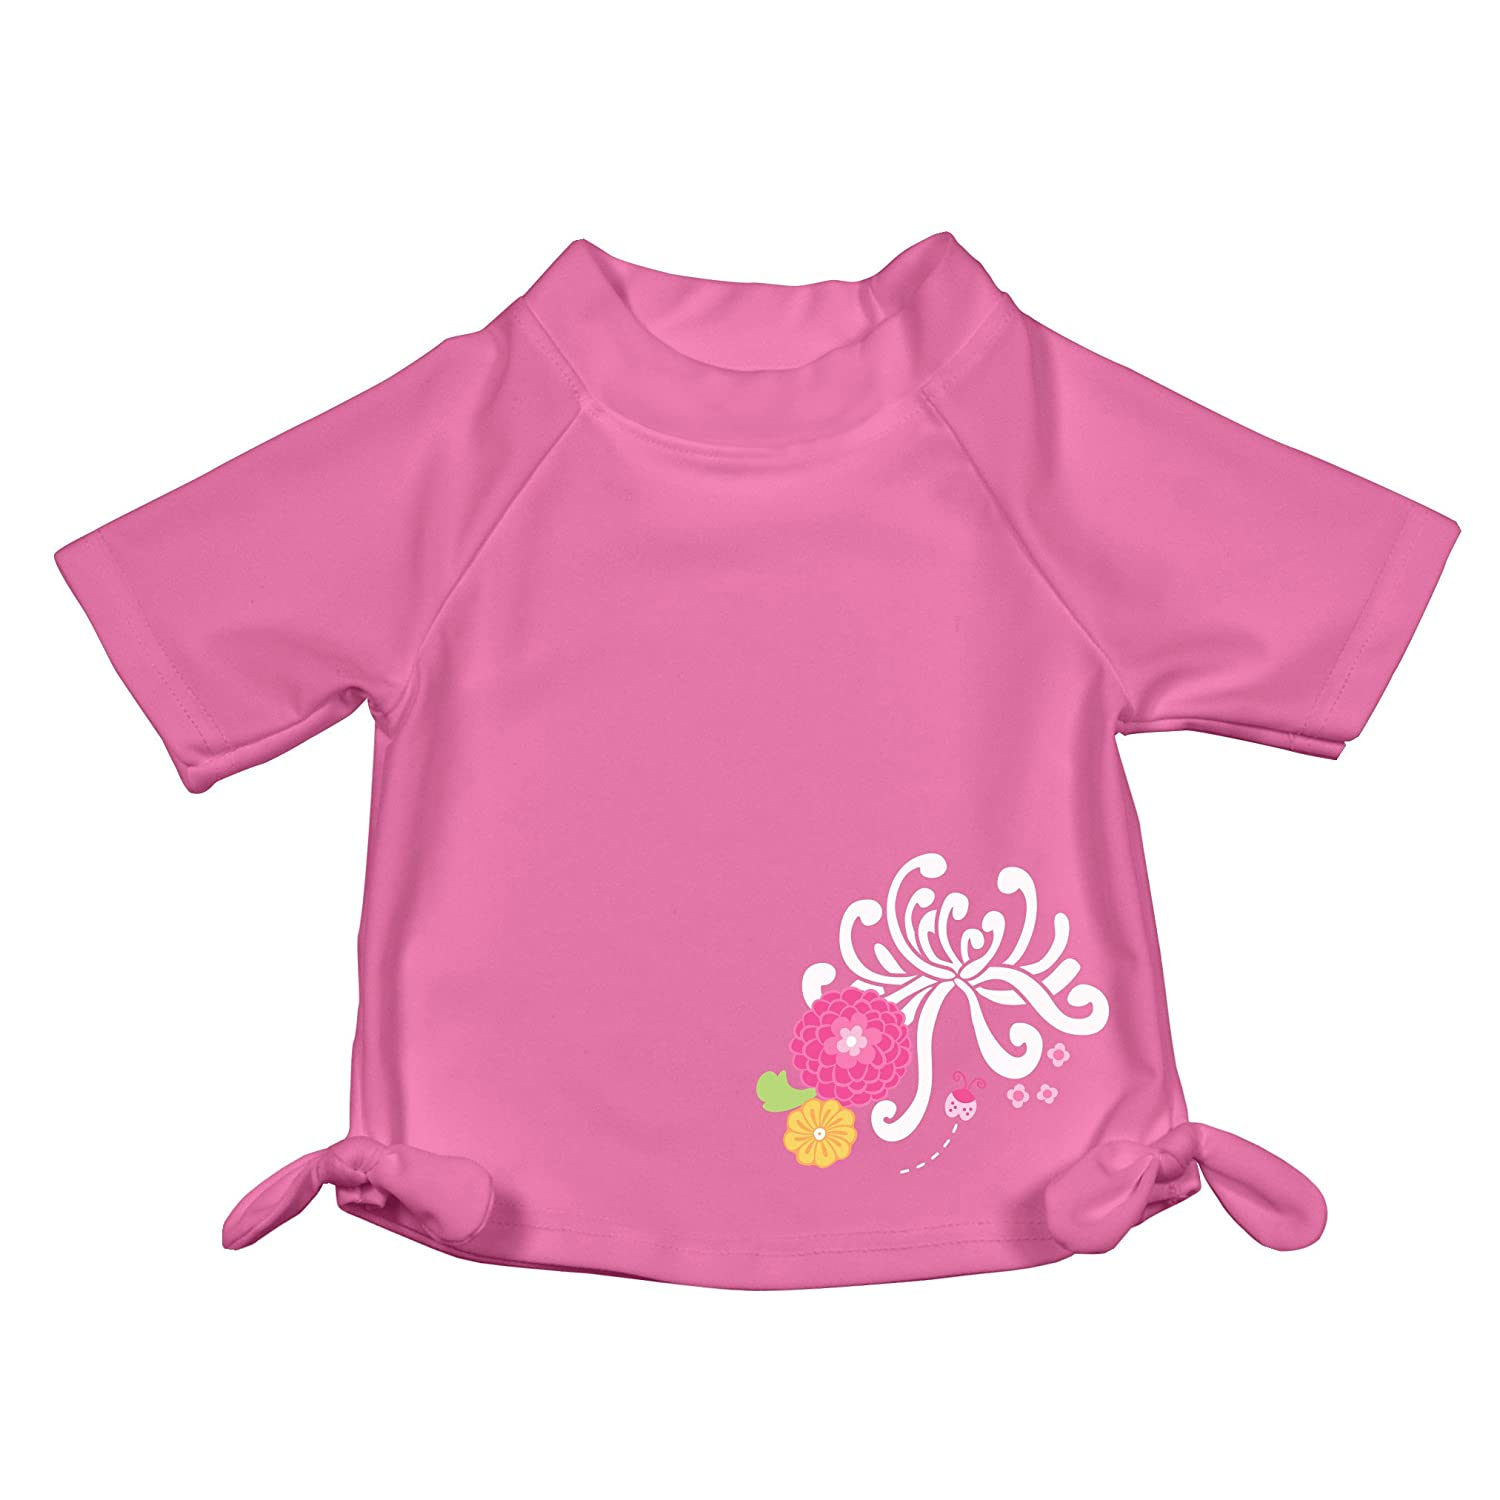 i play. Baby & Toddler Girls' Short Sleeve Bow Rashguard UPF 50+ Pink 6 Months 760150